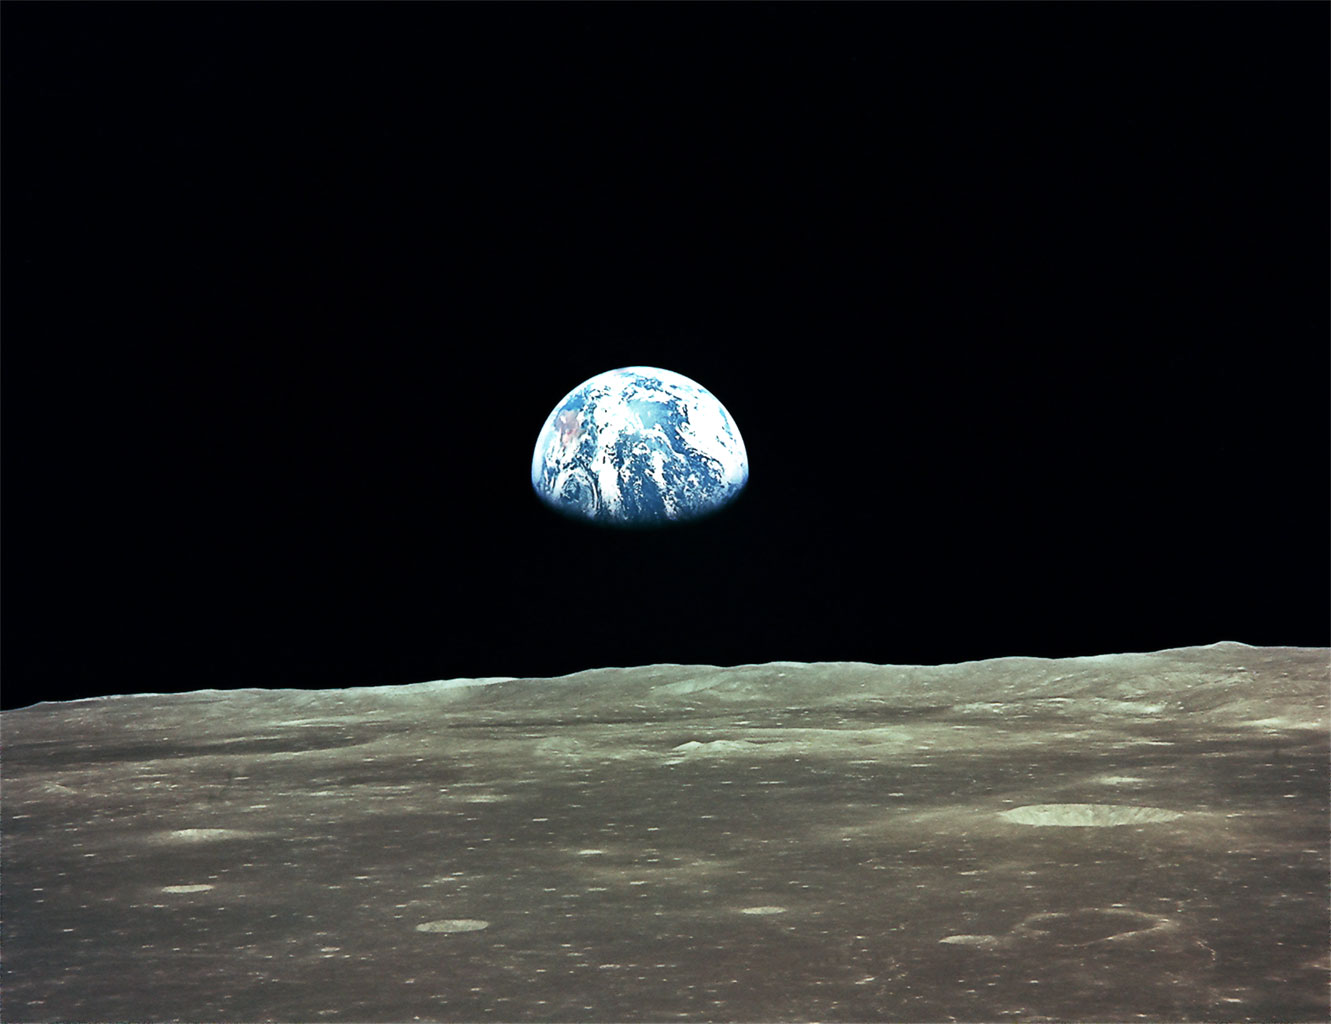 apollo-11-earthrise-4-9.jpg